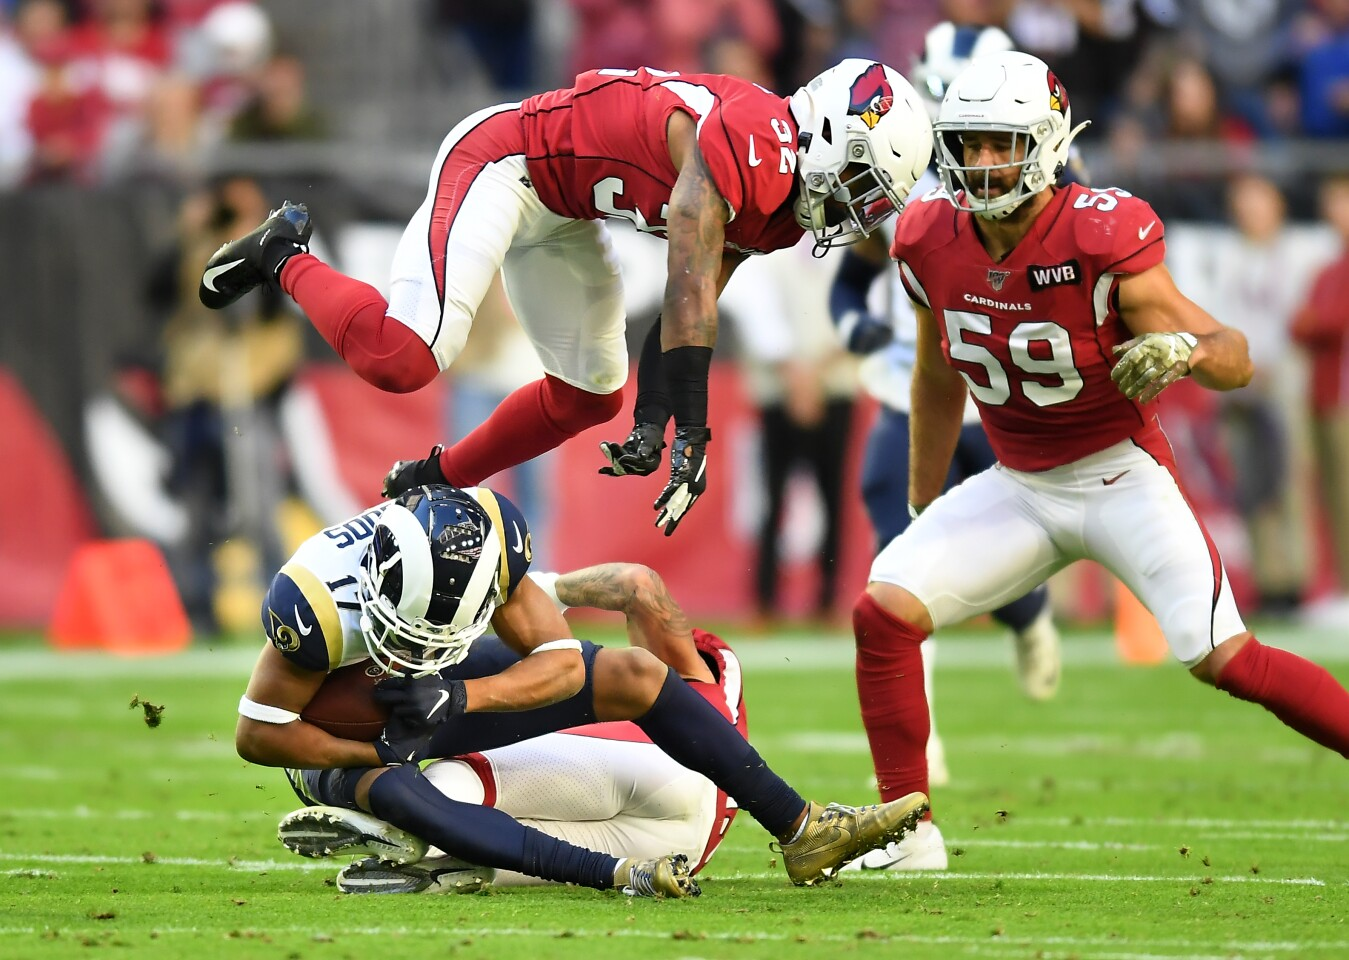 Rams wide receiver Robert Woods makes a reception as Cardinals safety Budda Baker leaps over him in front of linebacker Joe Walker.